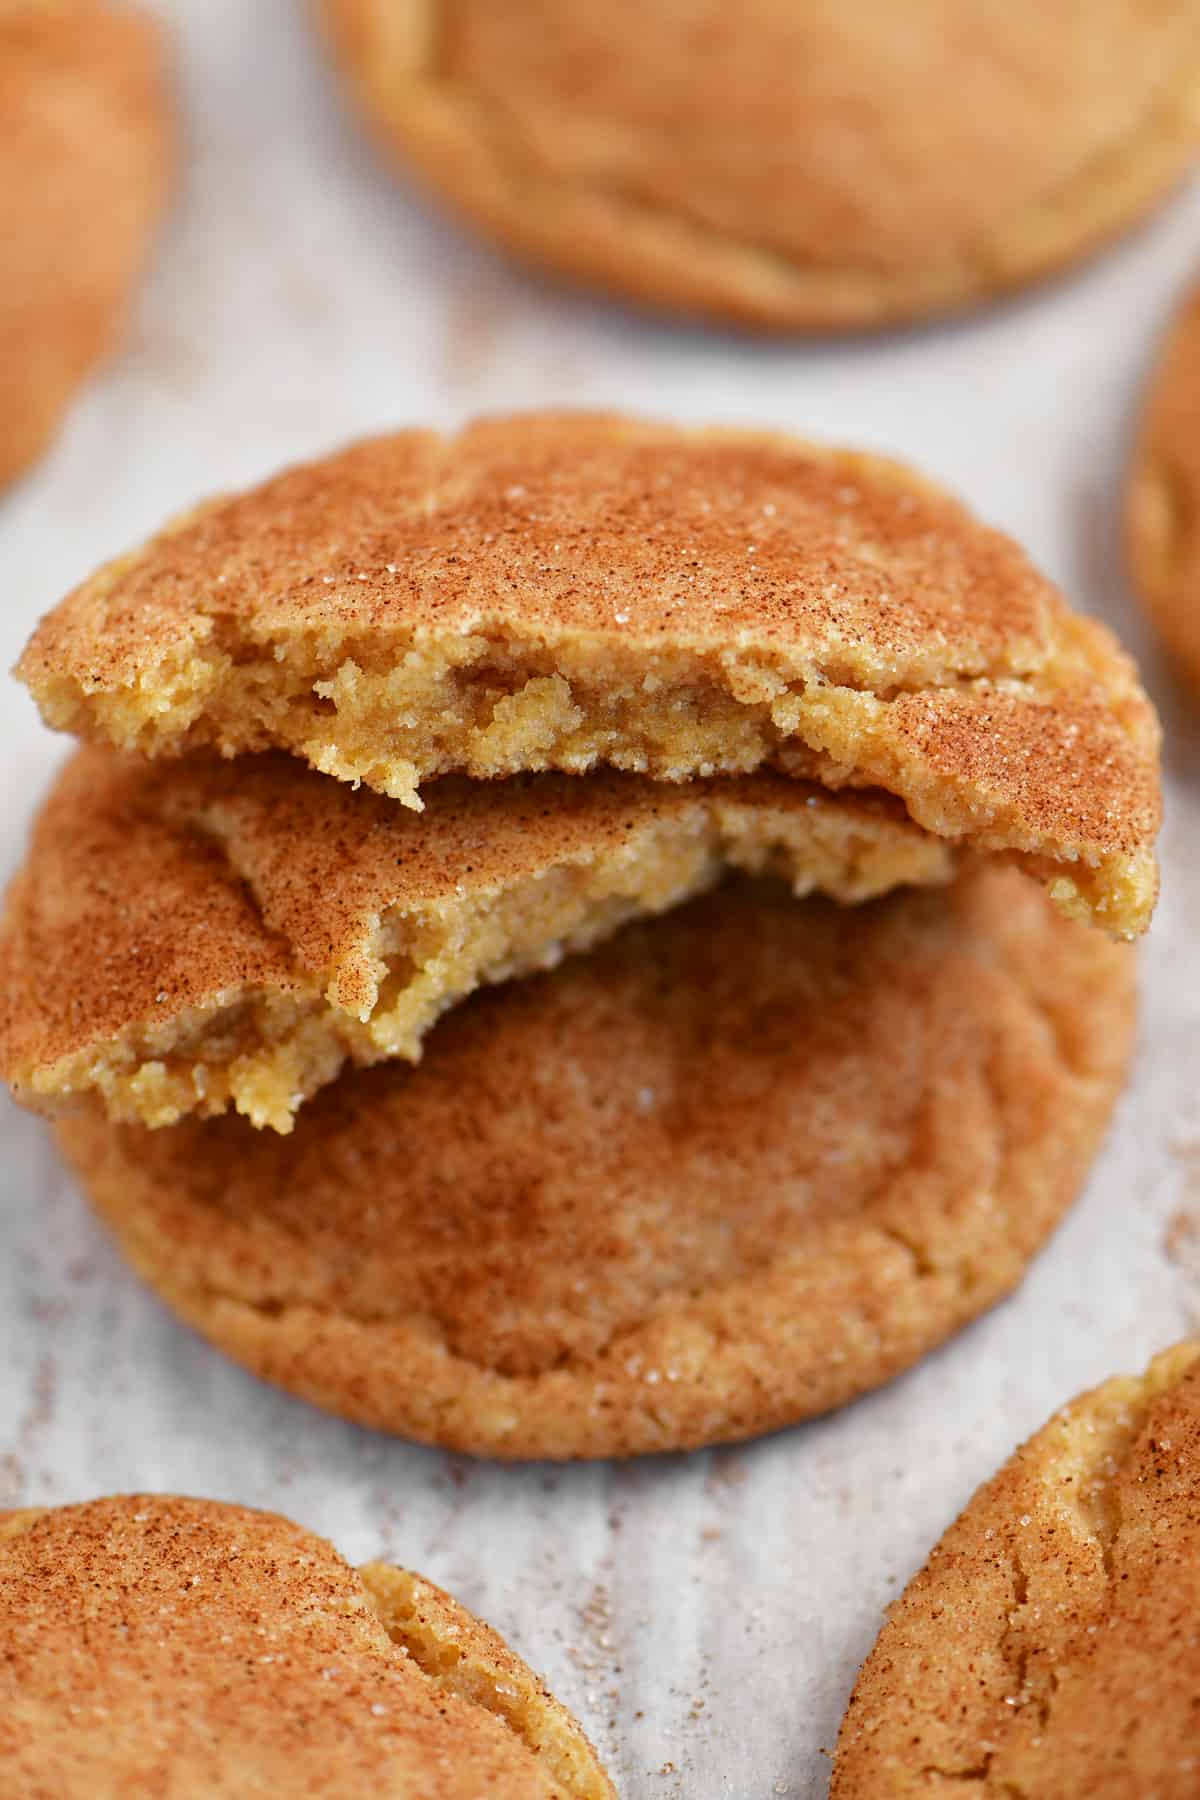 inside of the snickerdoodles